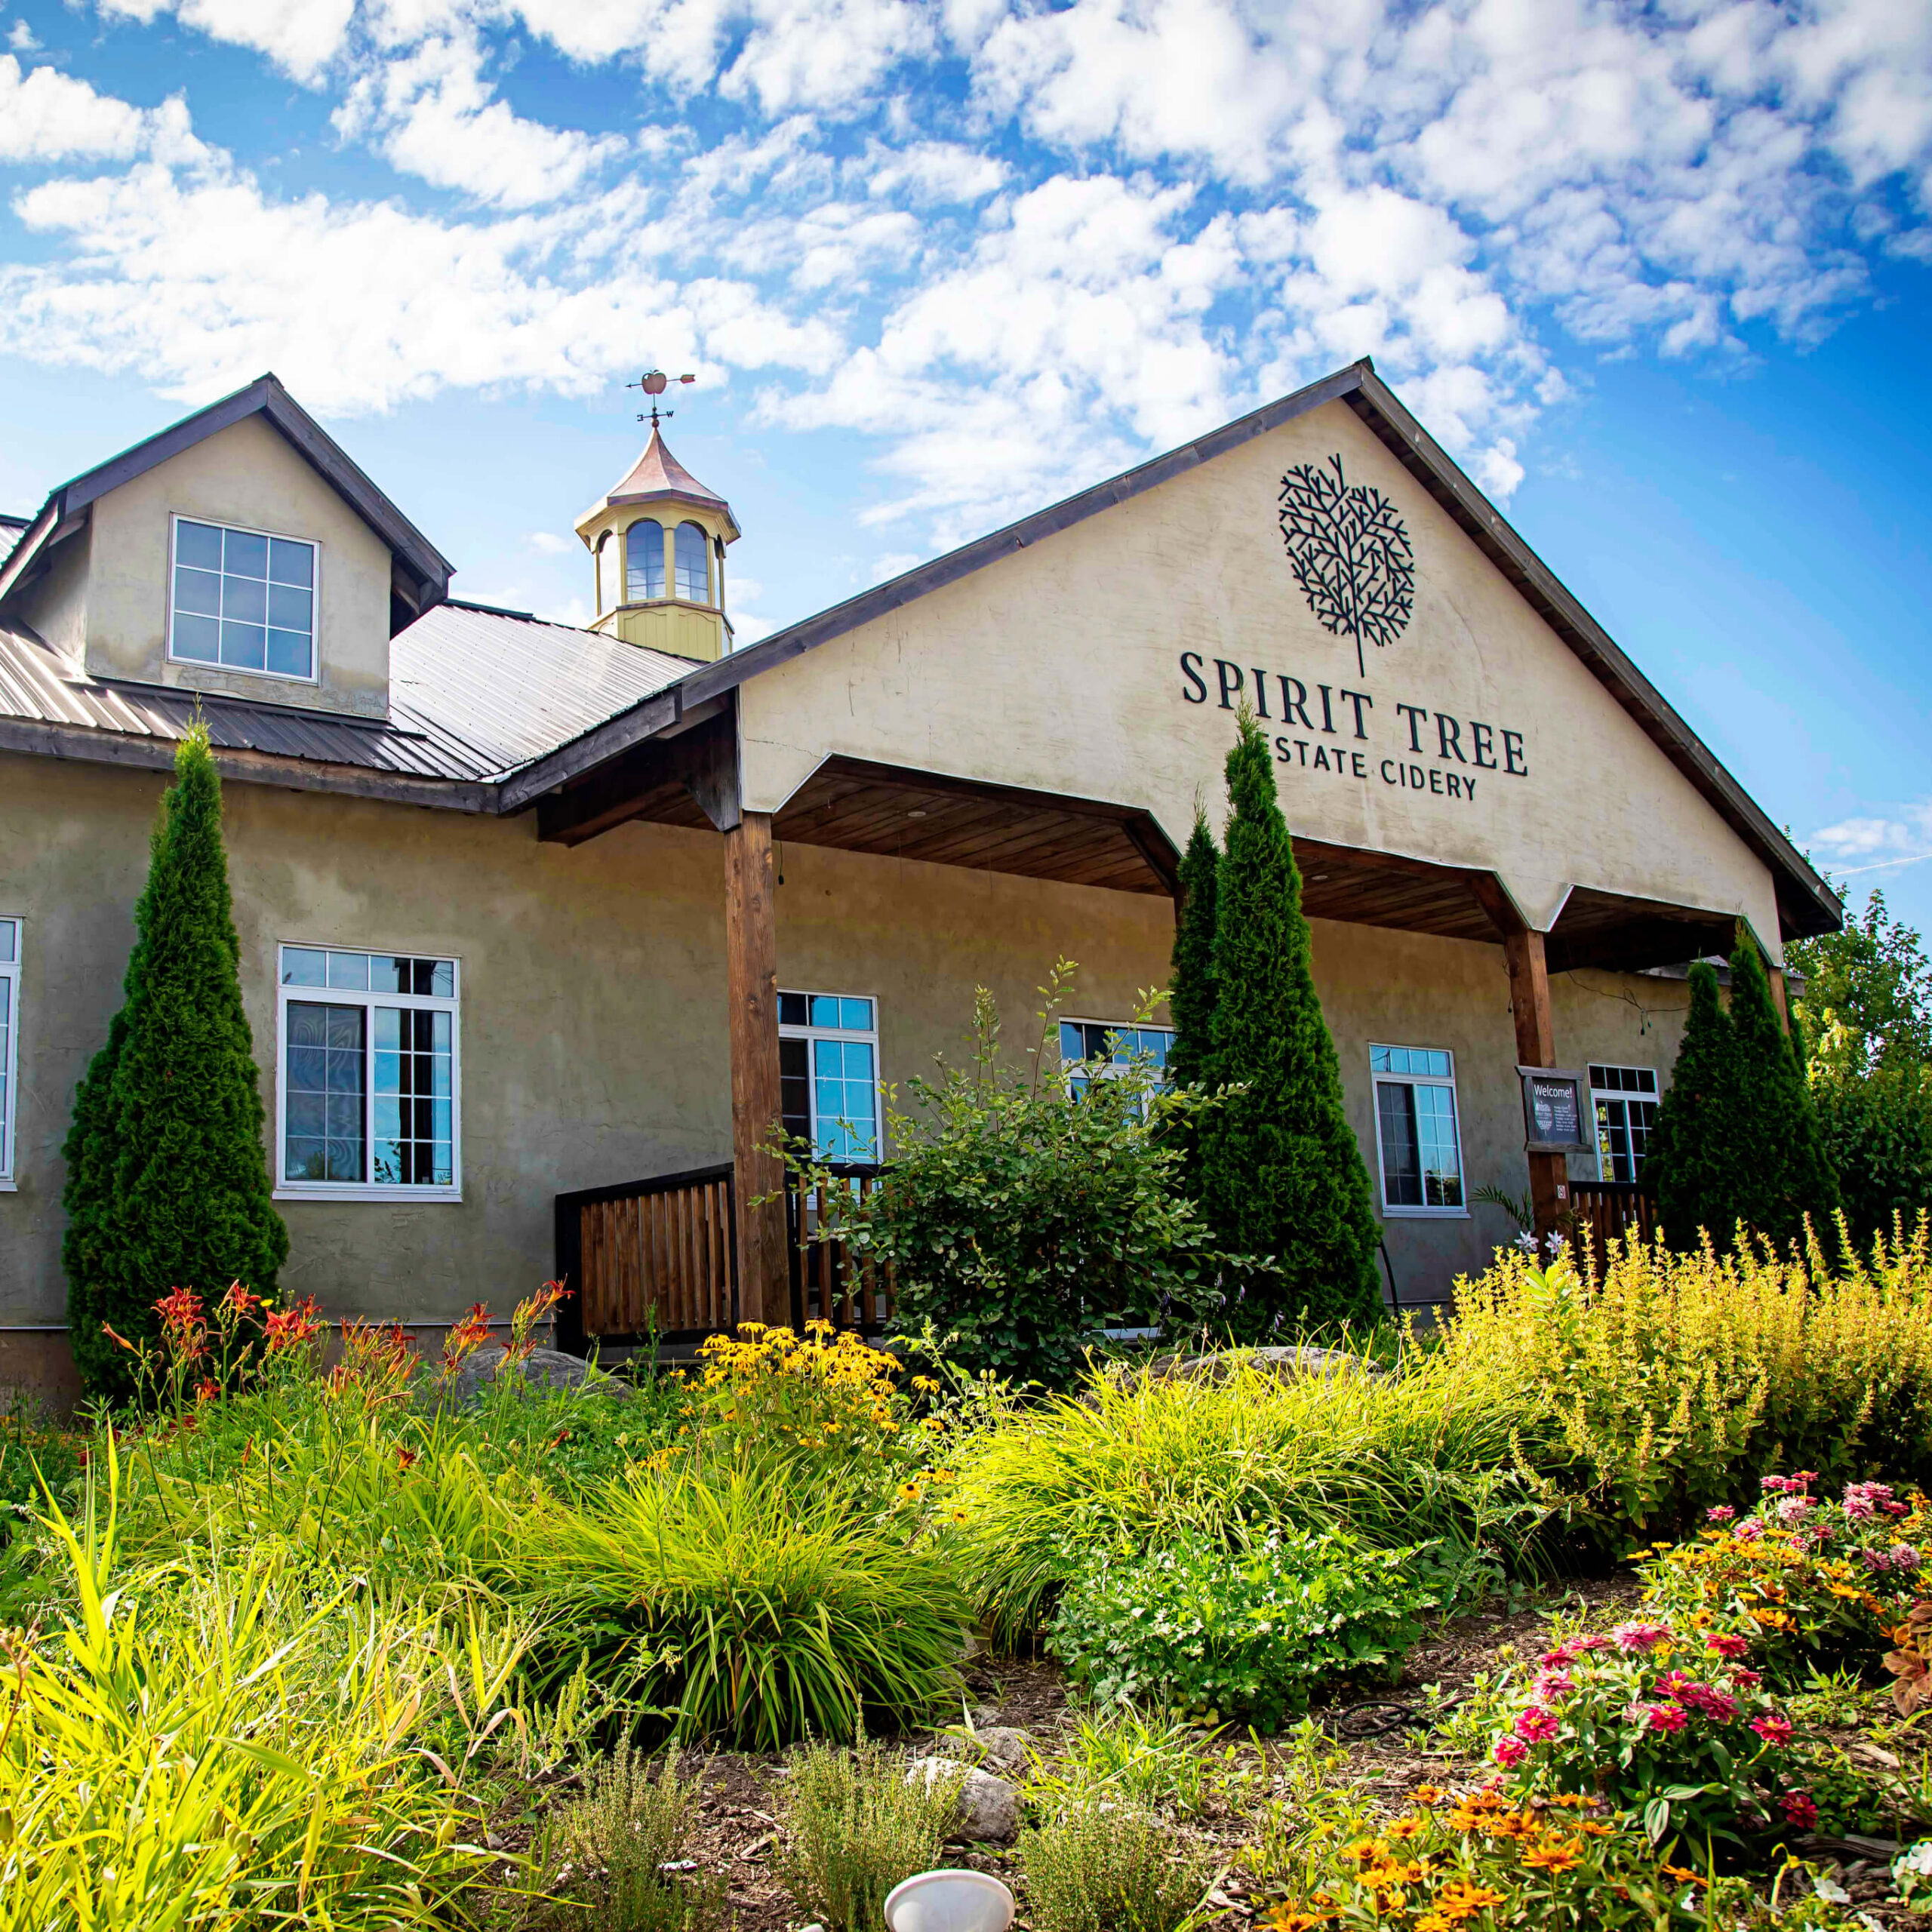 A view of Spirit Tree Estate Cidery